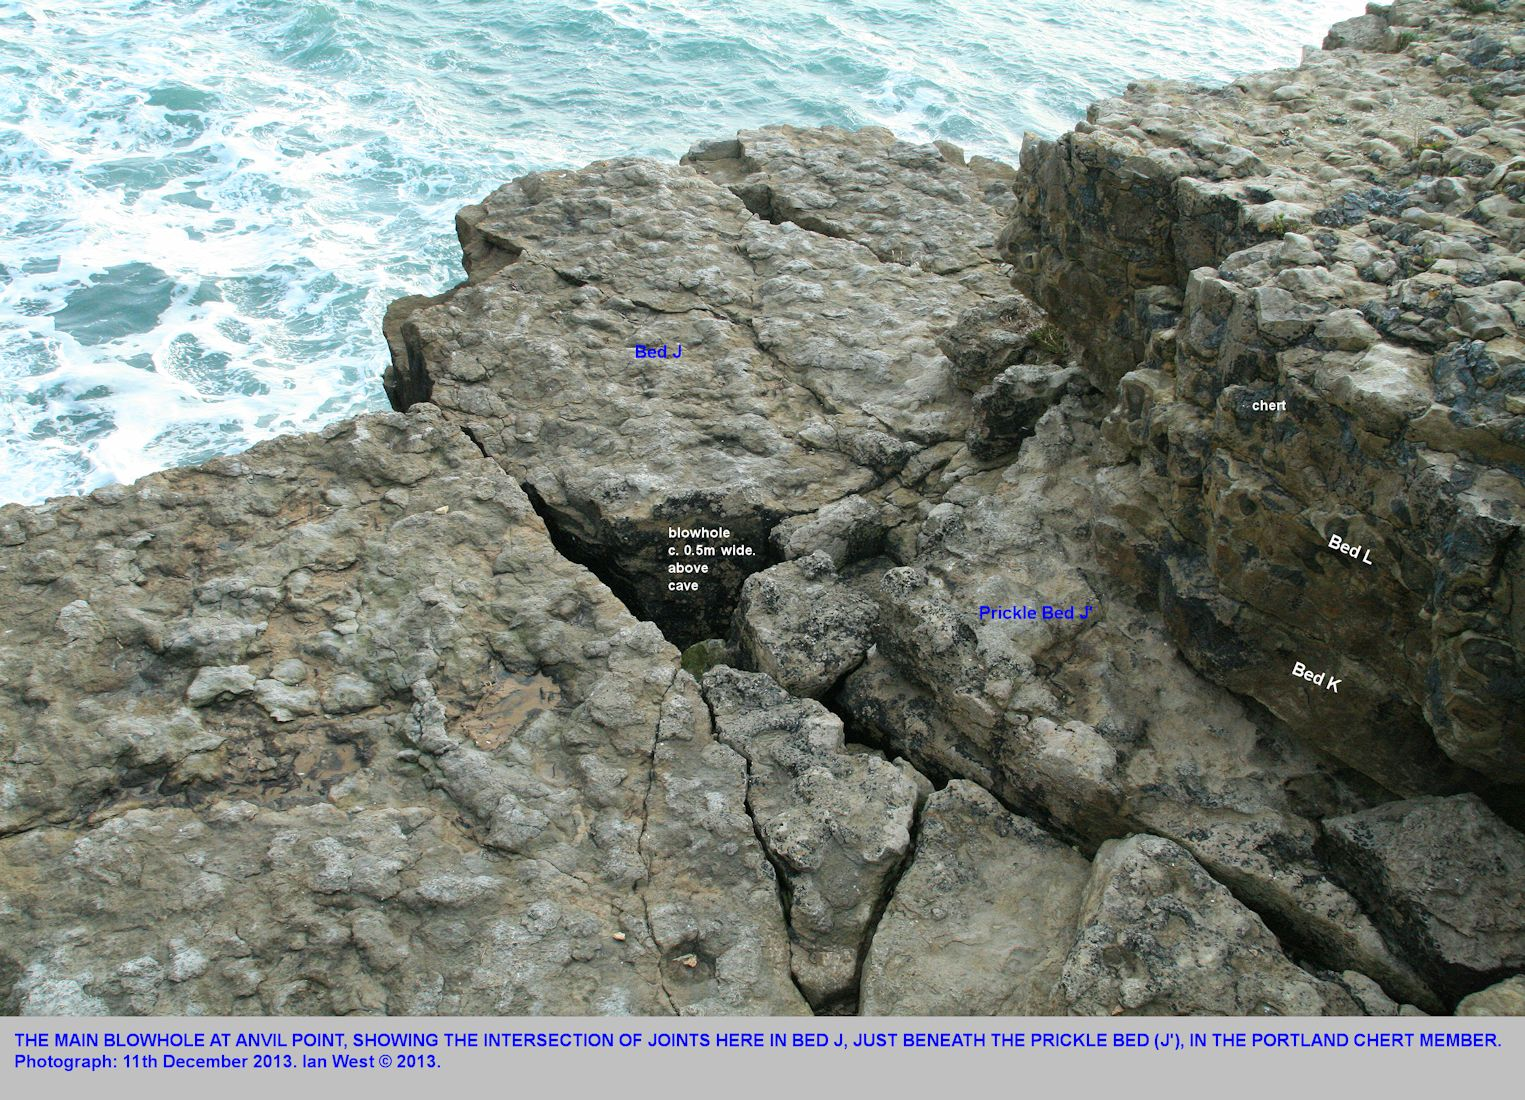 A medium overview of the main blowhole, at the intersection of joints, and with beds labelled, at Anvil Point, near Swanage, Dorset, 11th December 2013